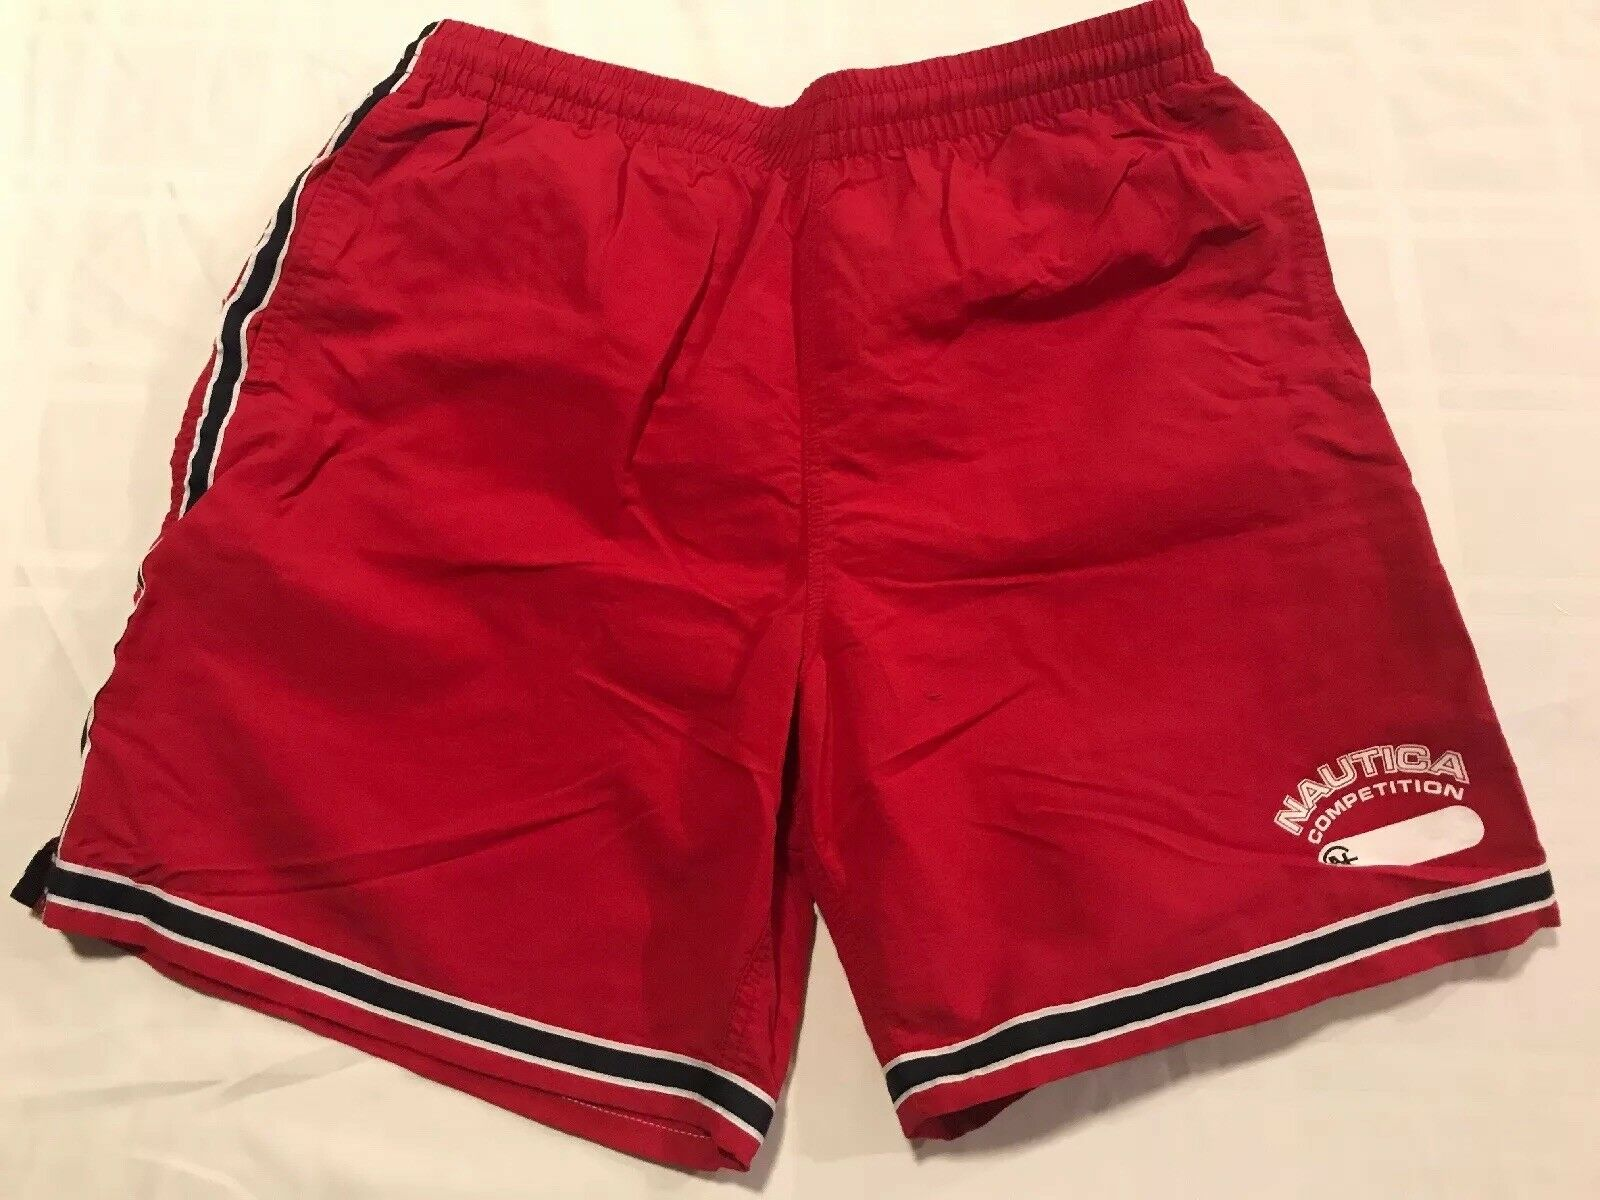 266d1a06090a7 Nautica Competition Swim Shorts Mens Sz Large Nylon Trunks Brief Lined Red  TS8